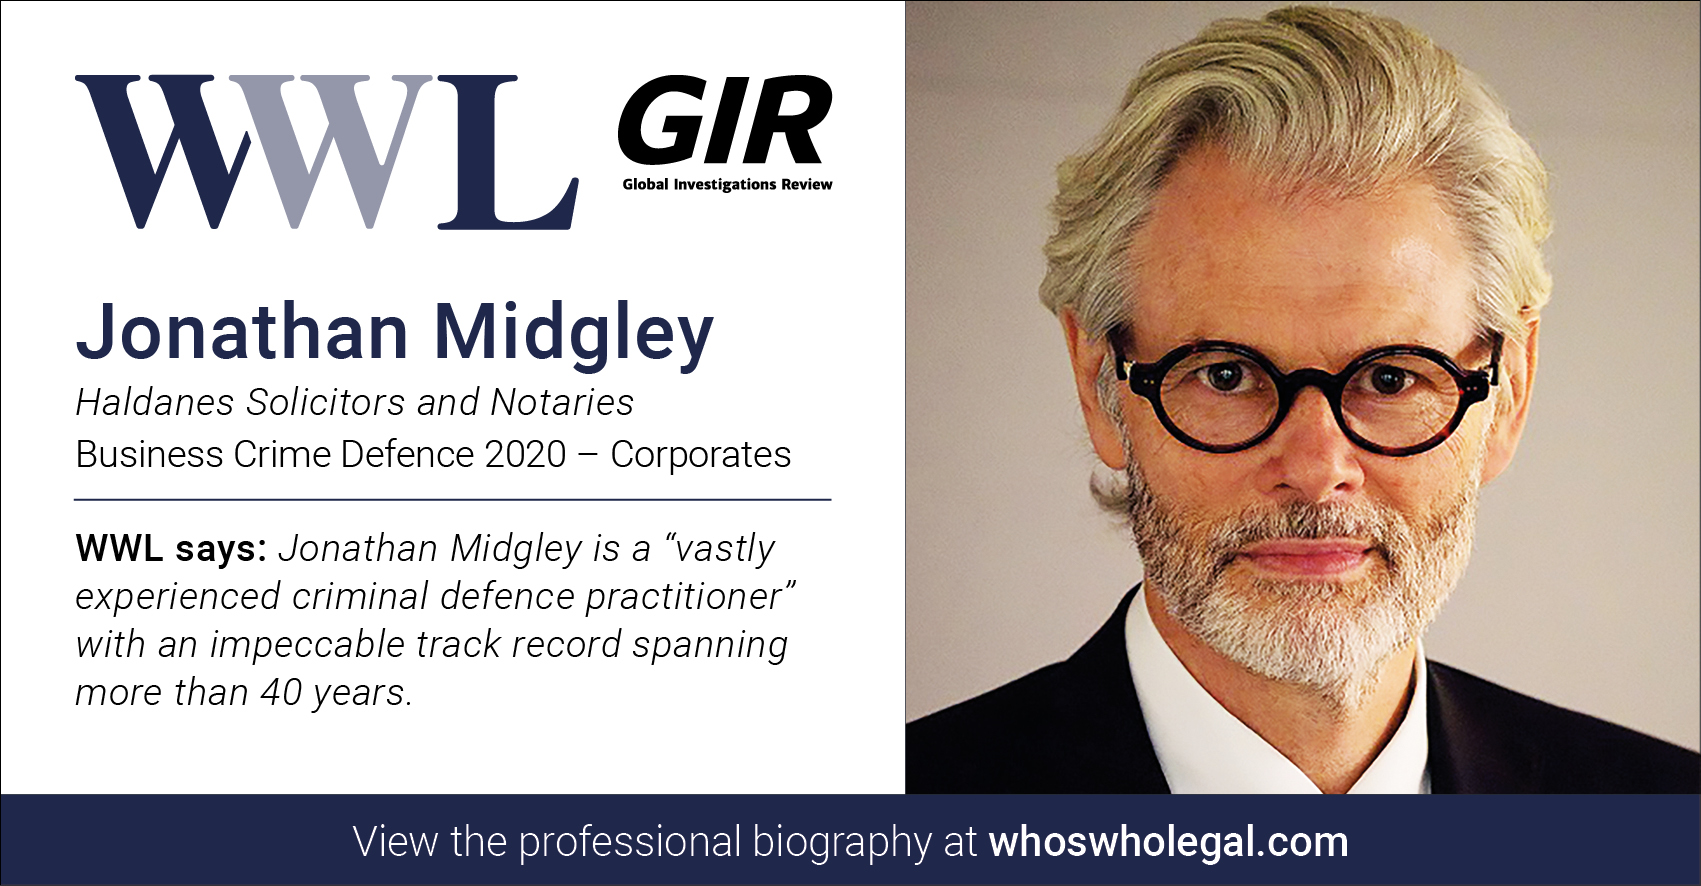 Jonathan Midgley Social Media Card Corporates - Haldanes recognised in Who's Who Legal Business Crime Defence 2020